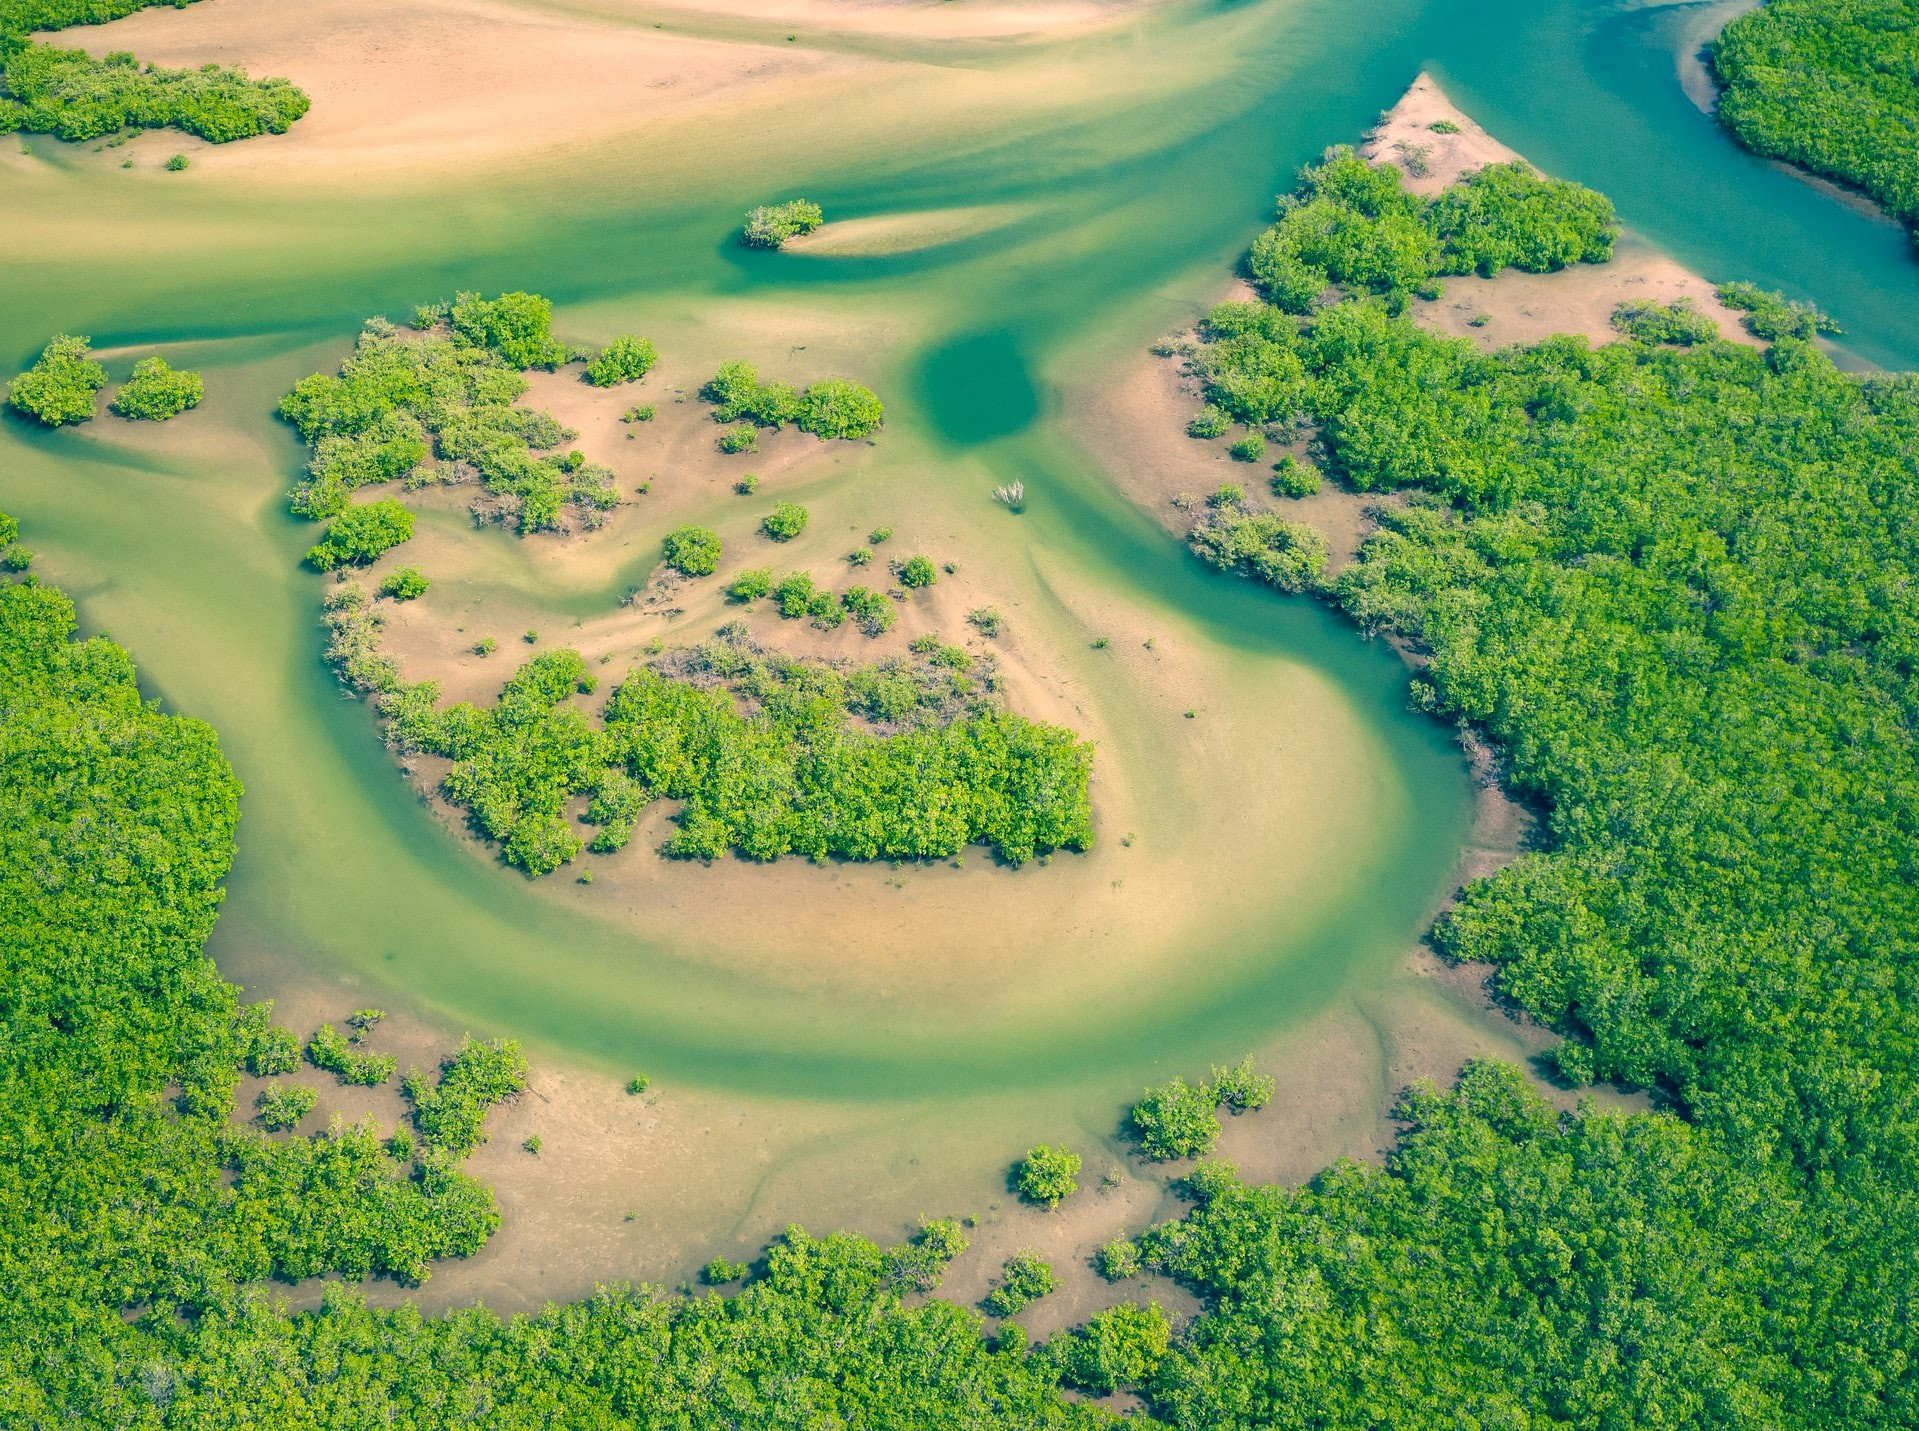 <p>Mangrove forests such as this one in Joal Fadiout, Senegal can be a critical source of nature-based solutions. Photo by Curioso Photography/Unsplash</p>